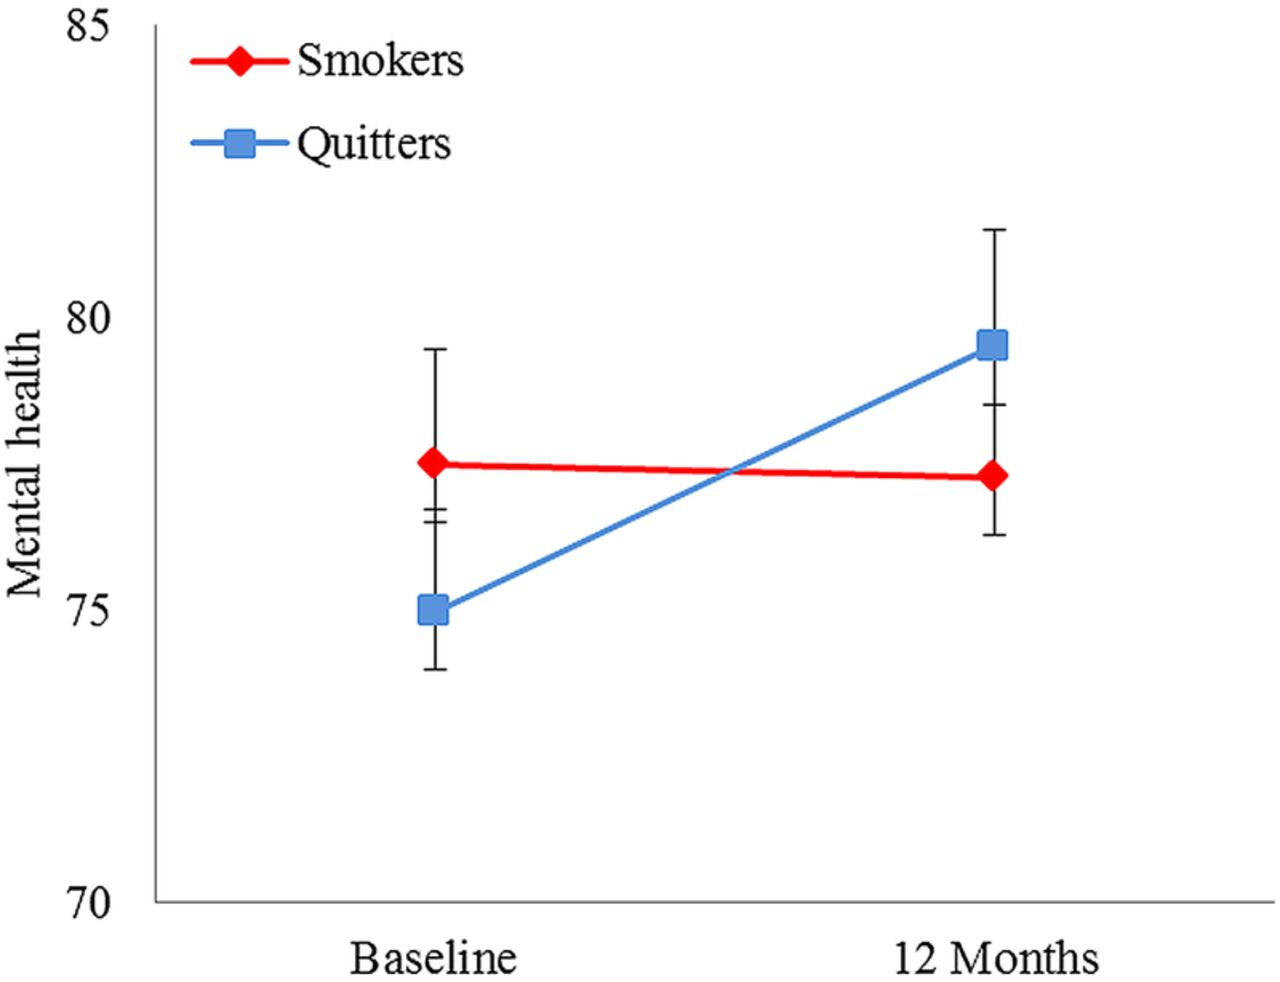 Does smoking cessation result in improved mental health? A